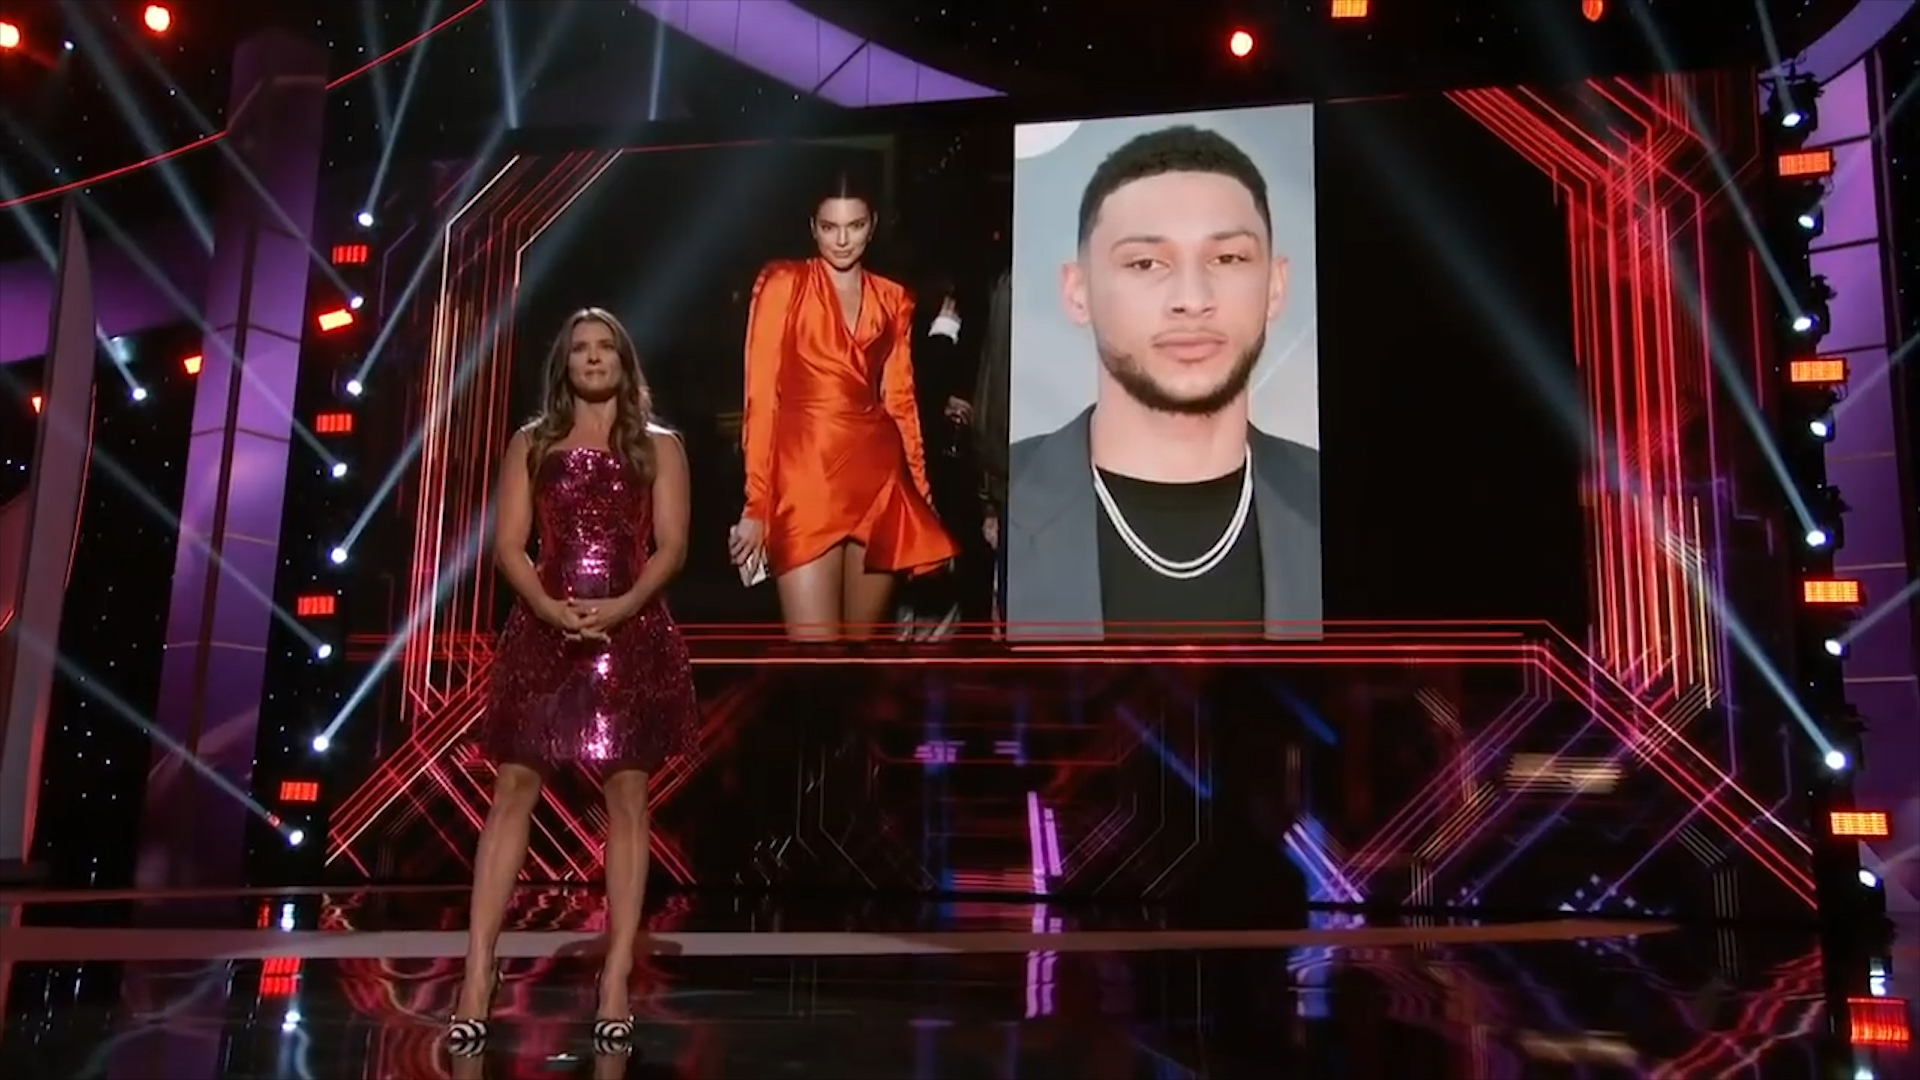 Simmons roasted at ESPY awards